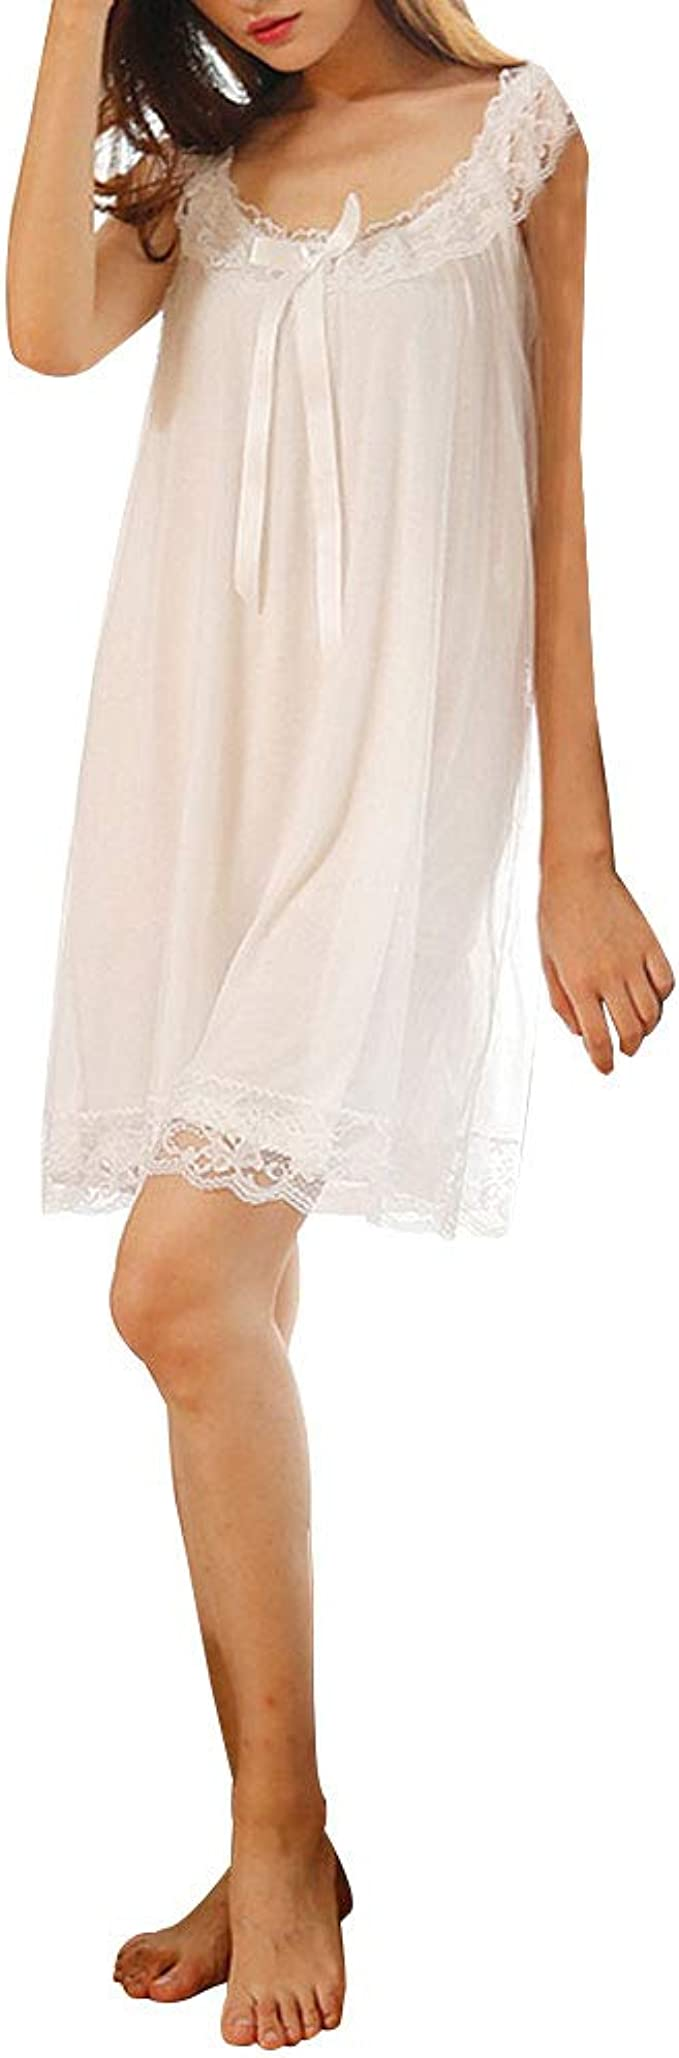 Vintage Nightgowns, Pajamas, Baby Dolls, Robes Womens Sleeveless Victorian Nightgown Vintage Floral Lace Trim Sleep Dress $29.22 AT vintagedancer.com